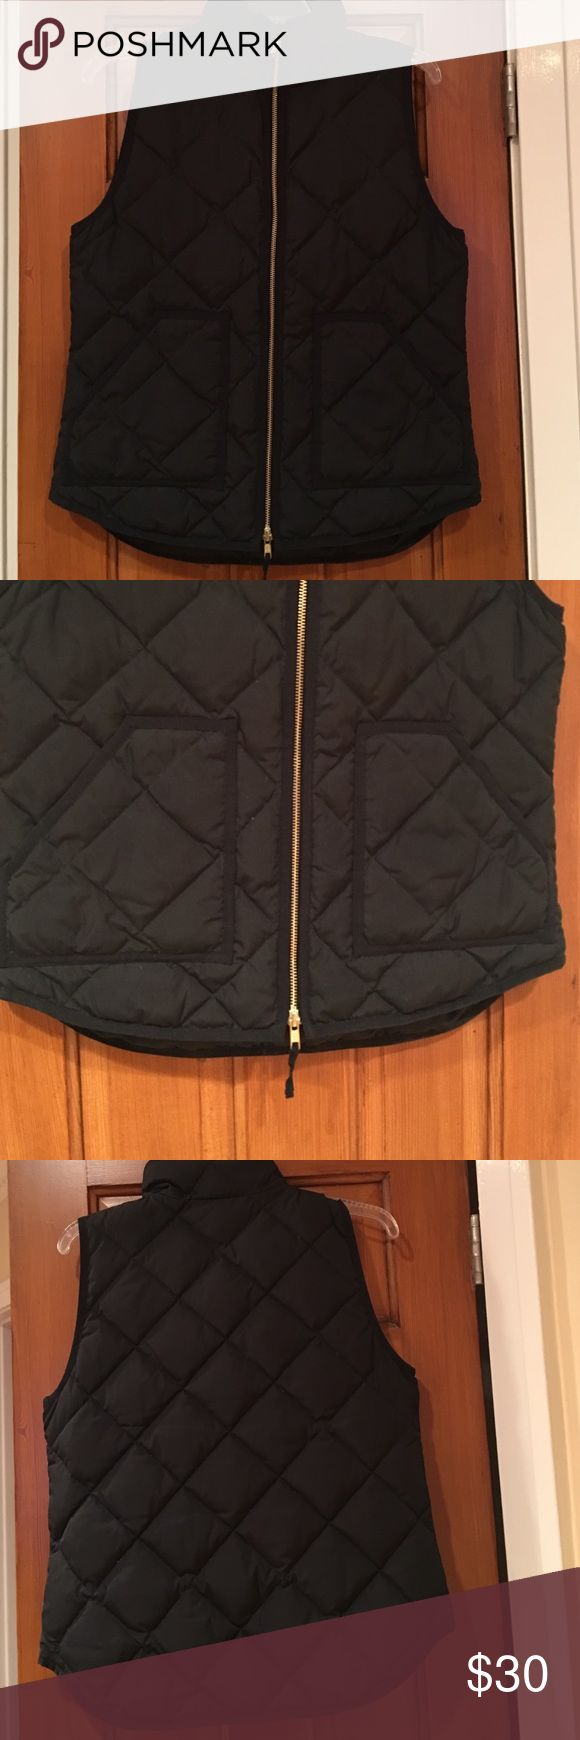 J crew puffer utility vest J crew factory puffer vest in black! Purchased and worn once. Found another vest I liked more. Don't need 2 black vests! J. Crew Factory Jackets & Coats Vests